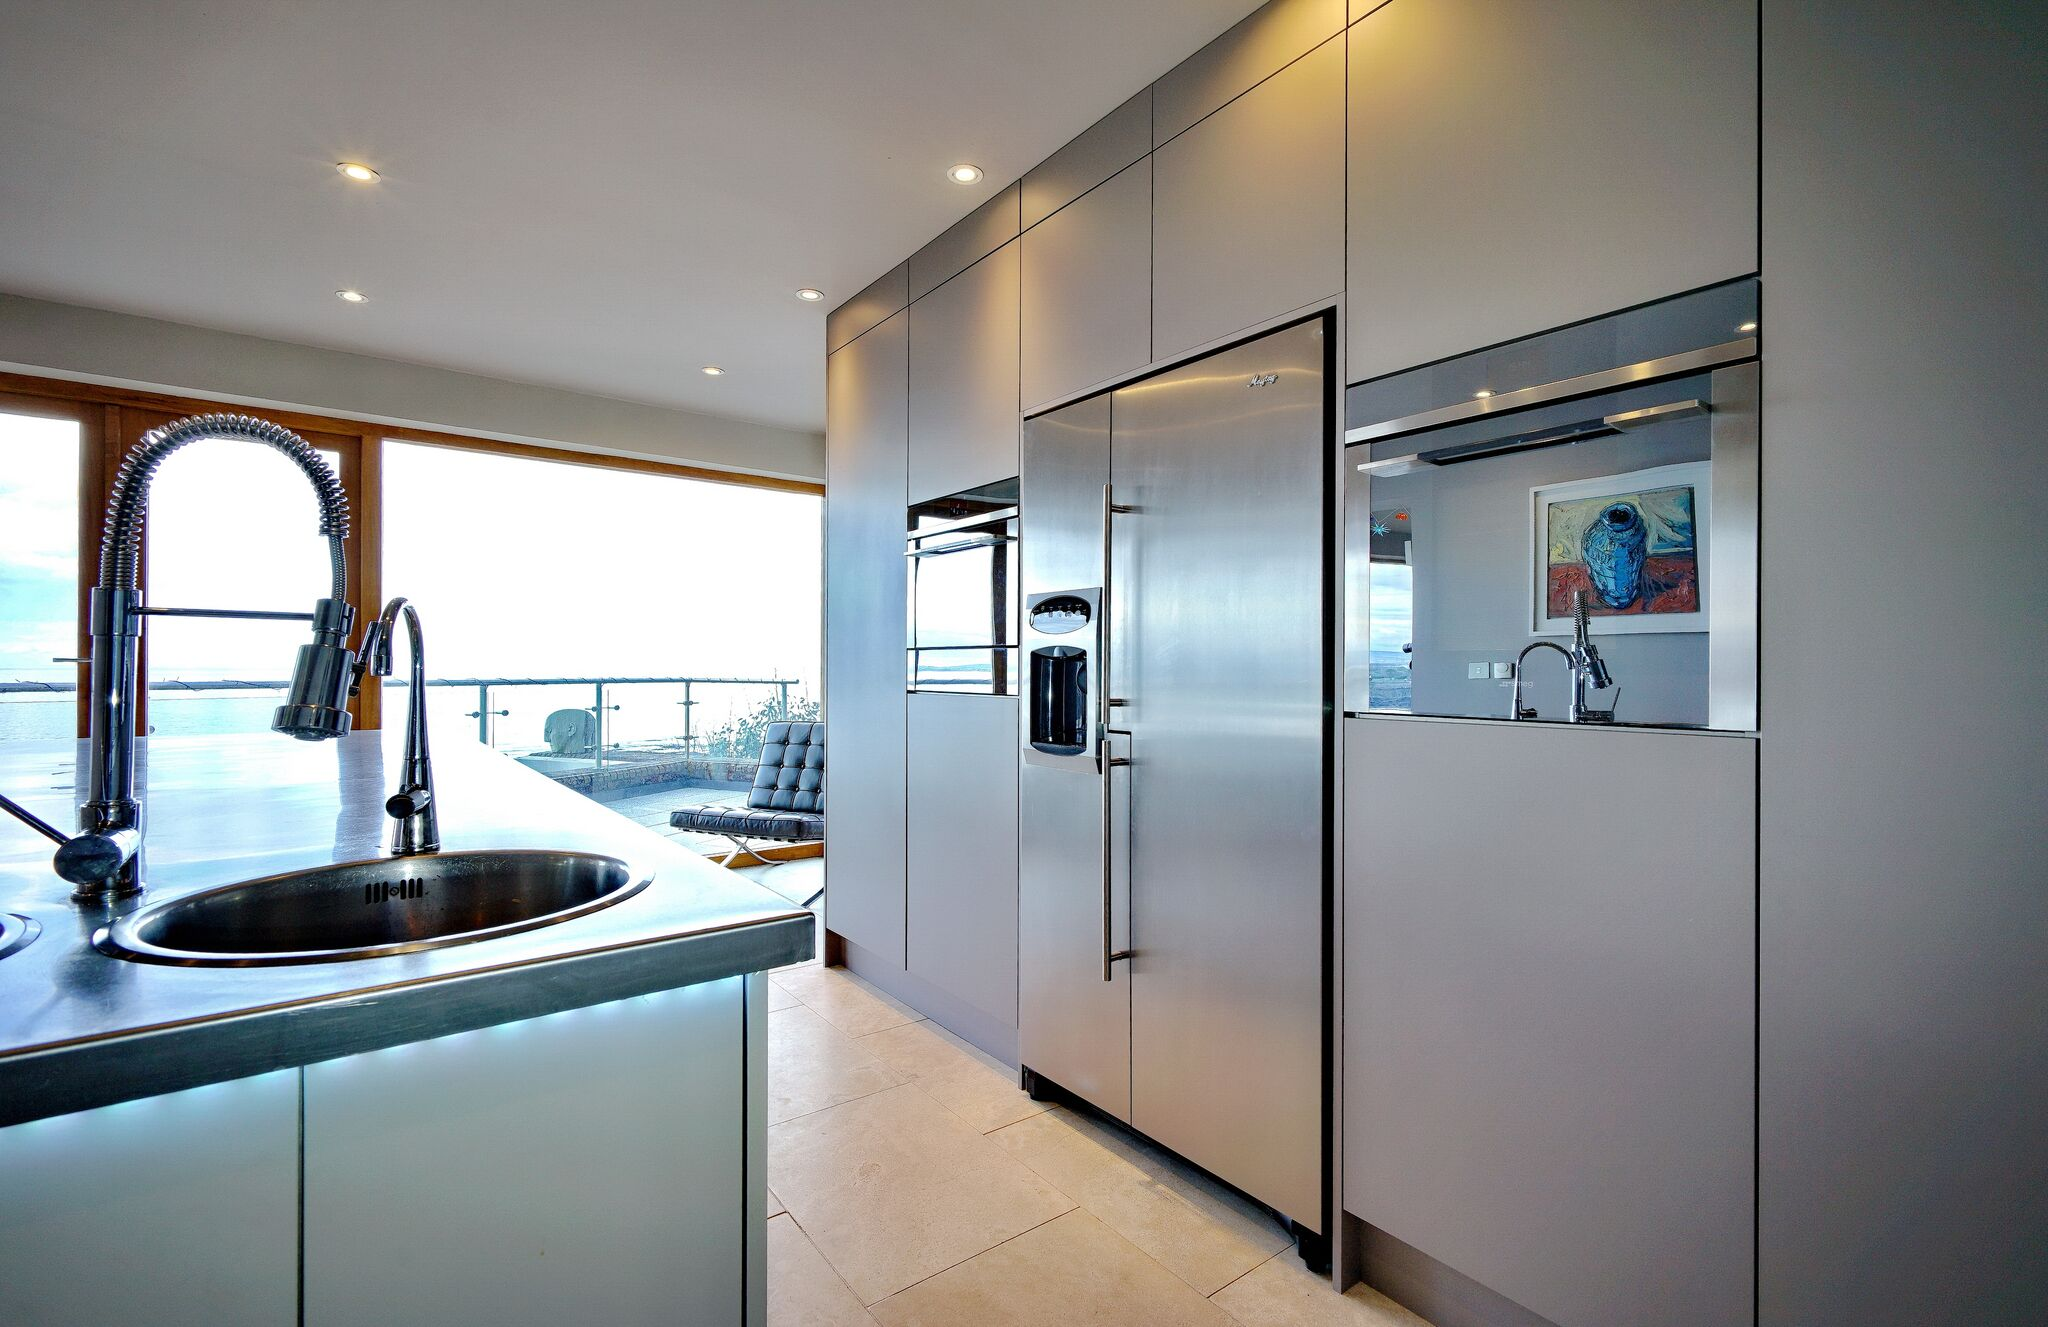 Adornas Kitchens Bangor-Modern Kitchen-Appliance Wall-German Kitchen-Smeg-Basalt-SeaView